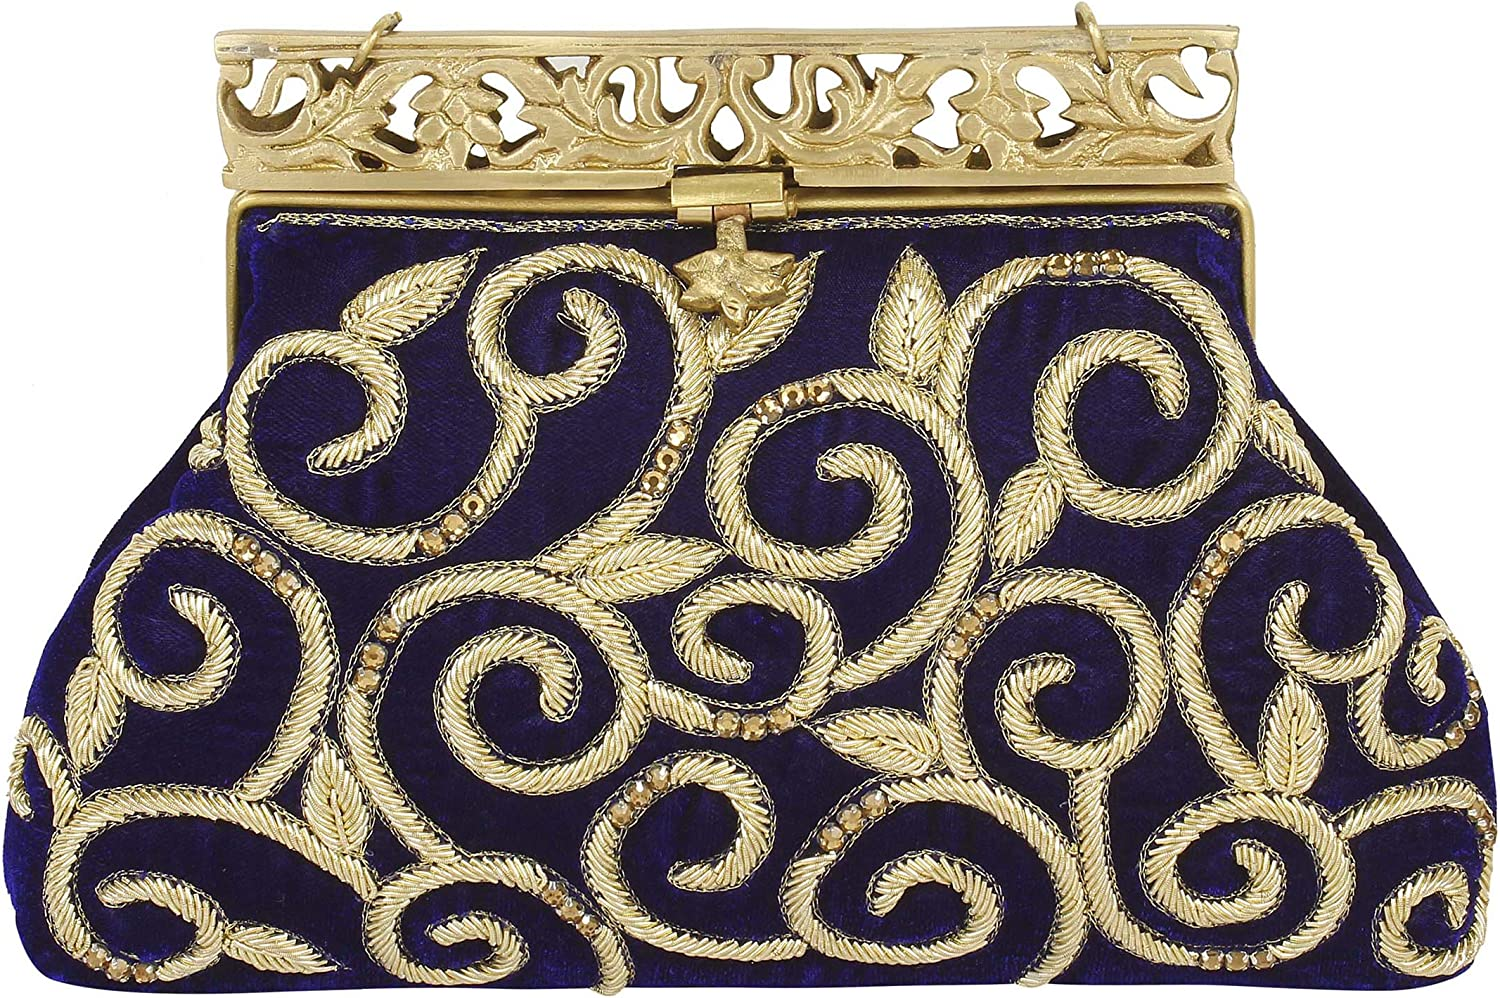 { Extra 10% Discount } Purse Collection bluee Handmade Clutch With Embroidery Work Purses For Women's